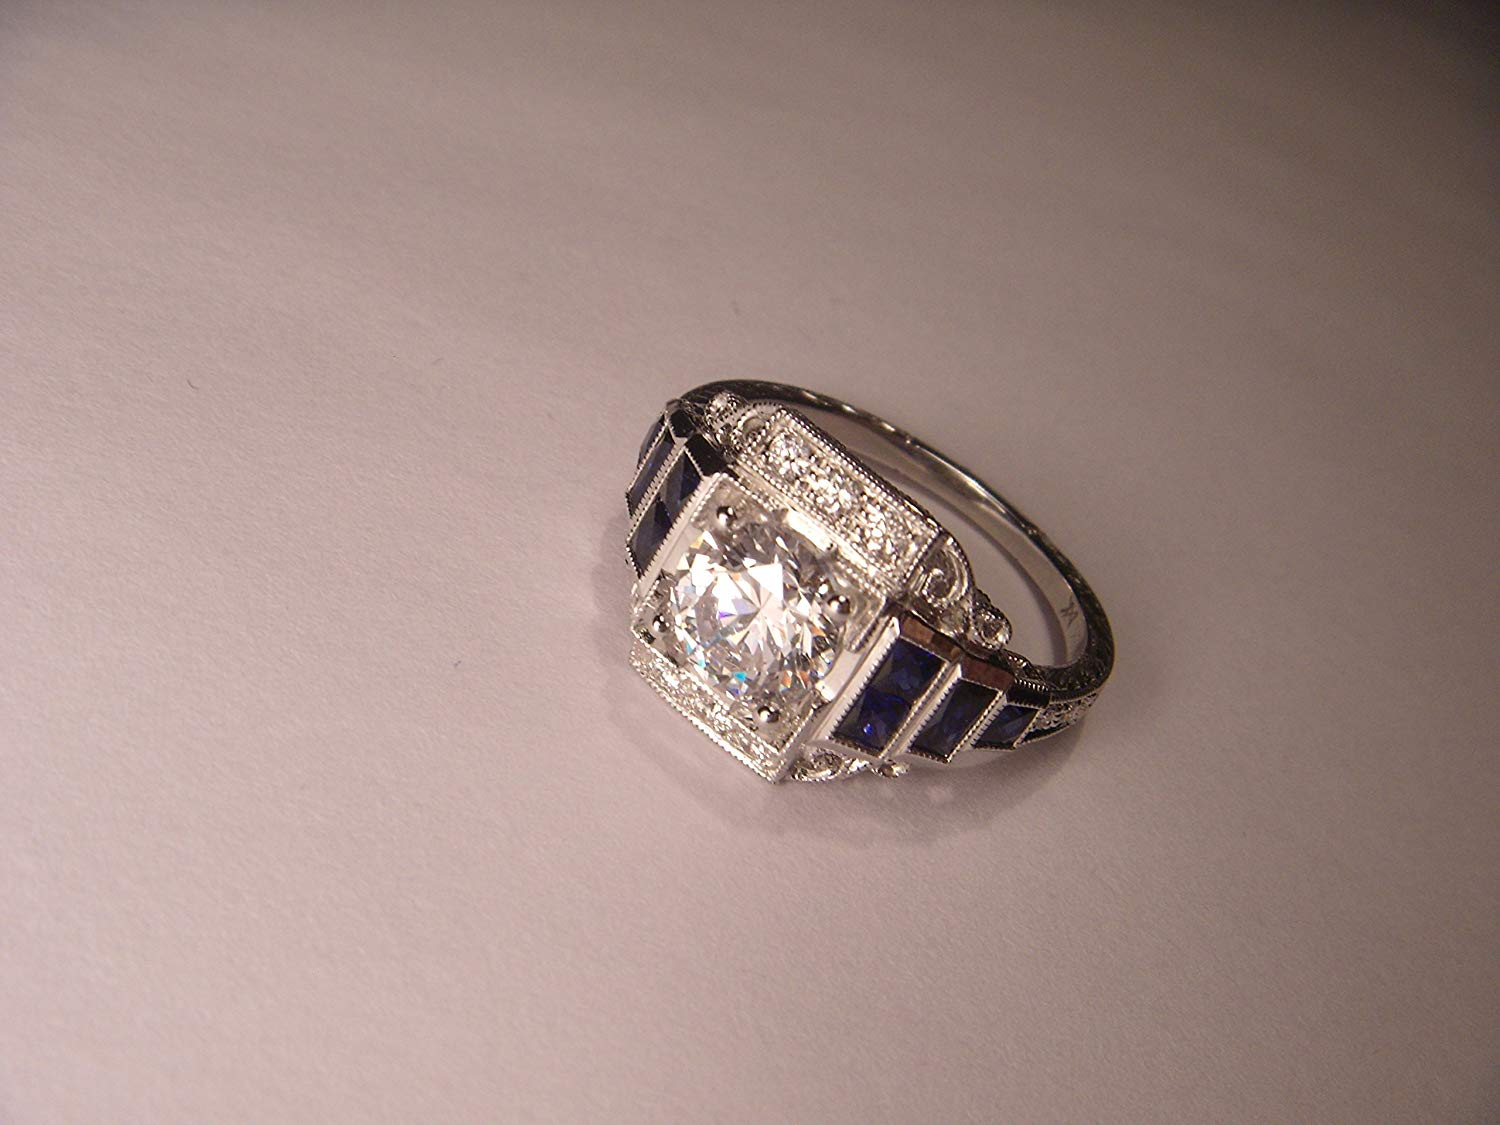 Antique Art Deco 18K White Gold 1.5 Carat Solitaire Diamond Engagement Ring Band